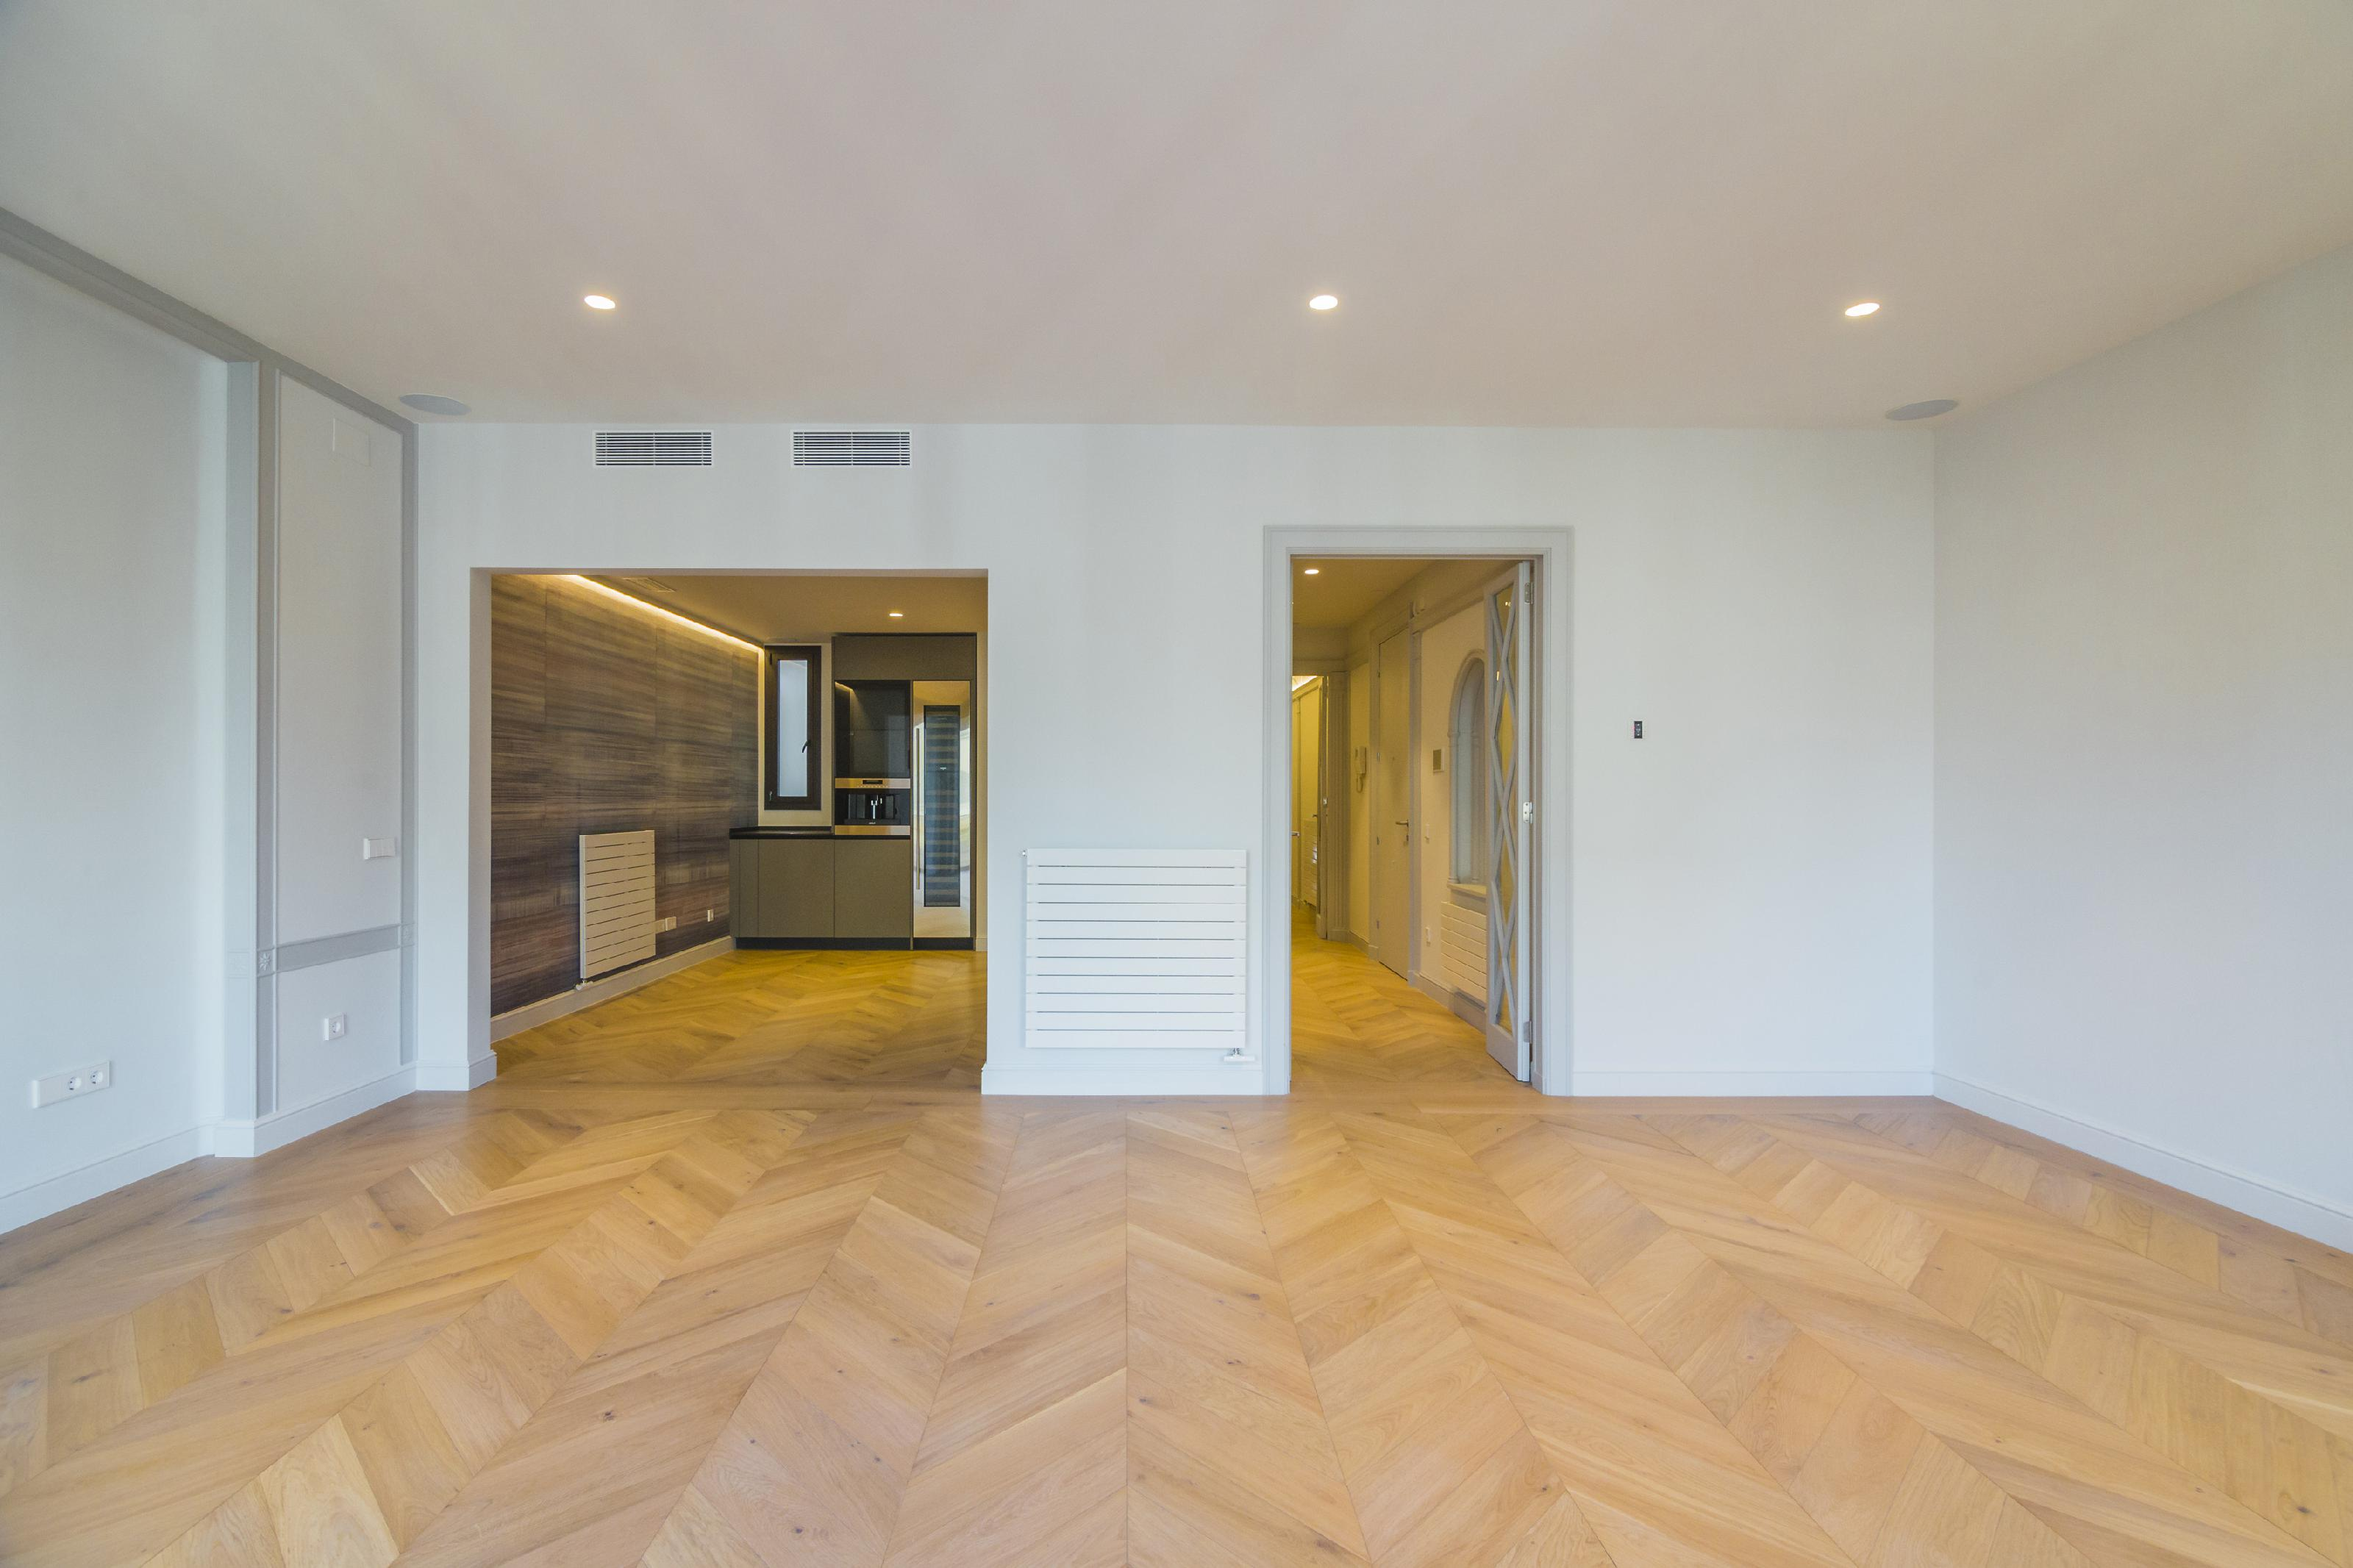 225429 Apartment for sale in Eixample, Dreta Eixample 18